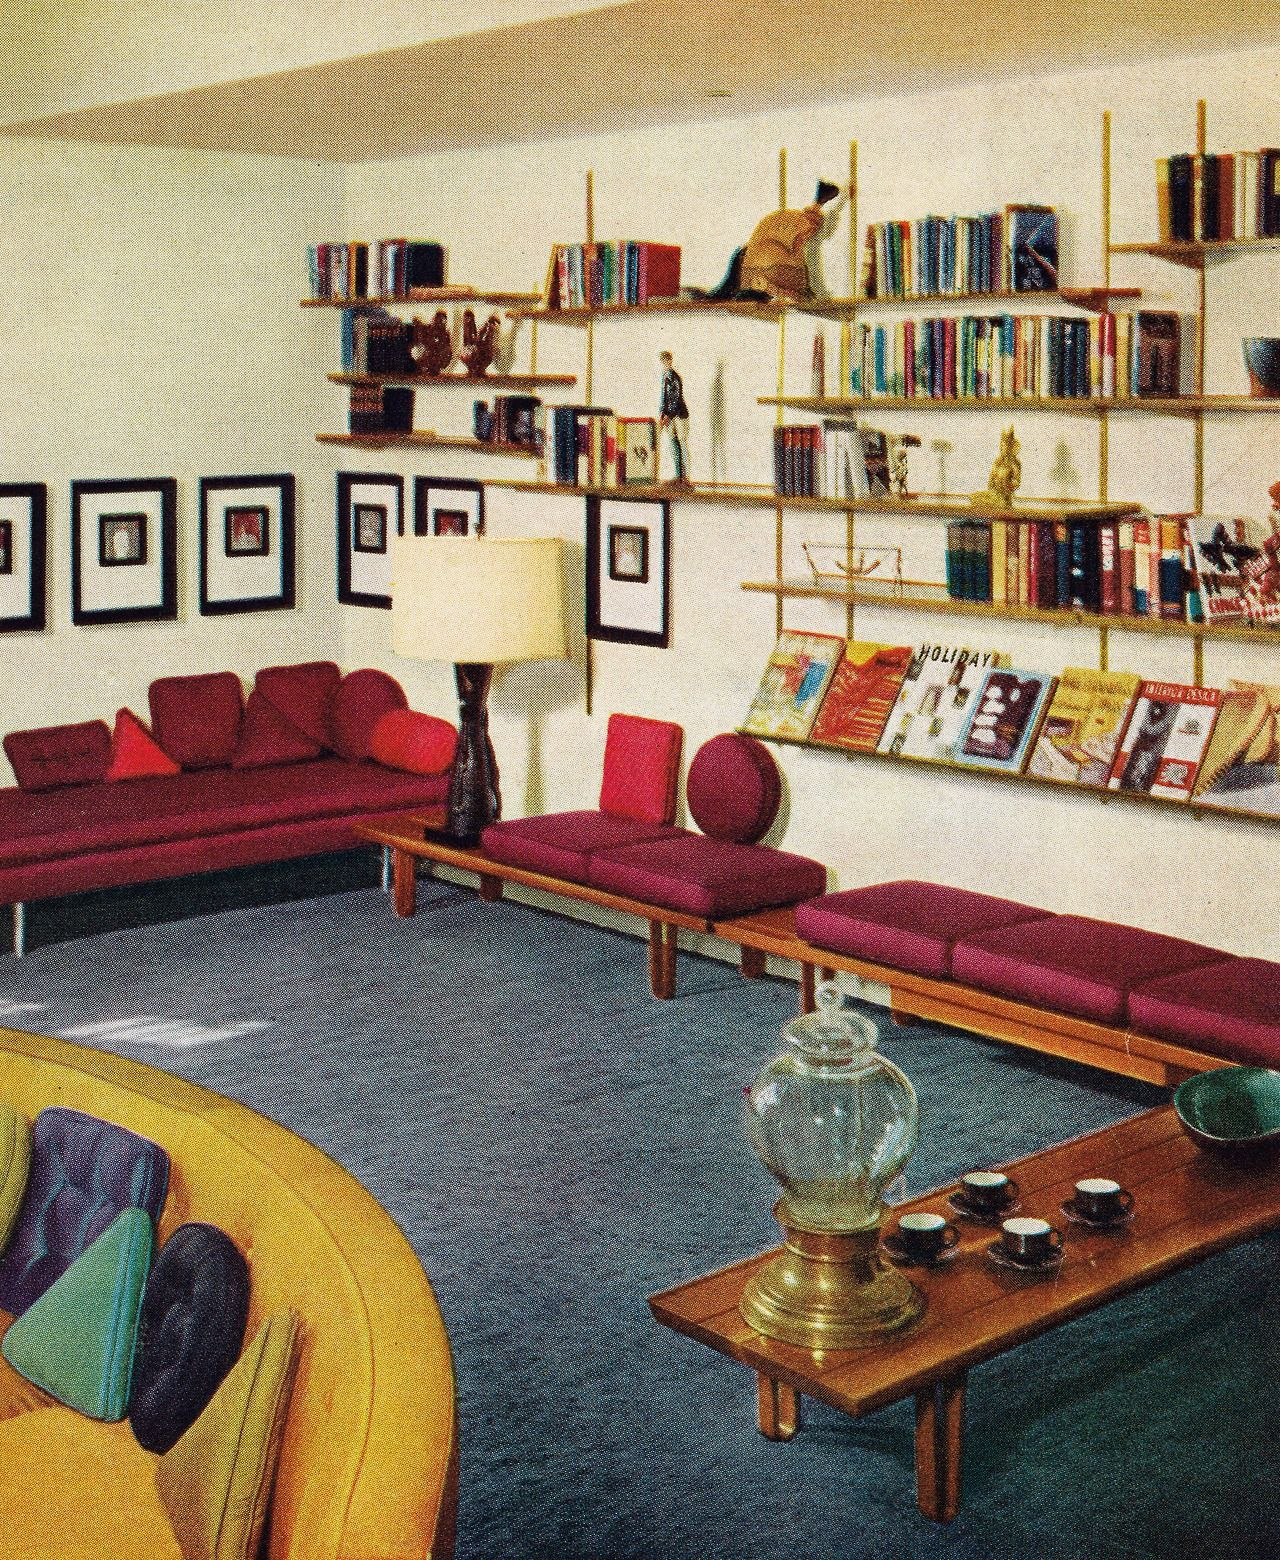 60s living room remarkably retro 1950s living room - 1950 s living room decorating ideas ...